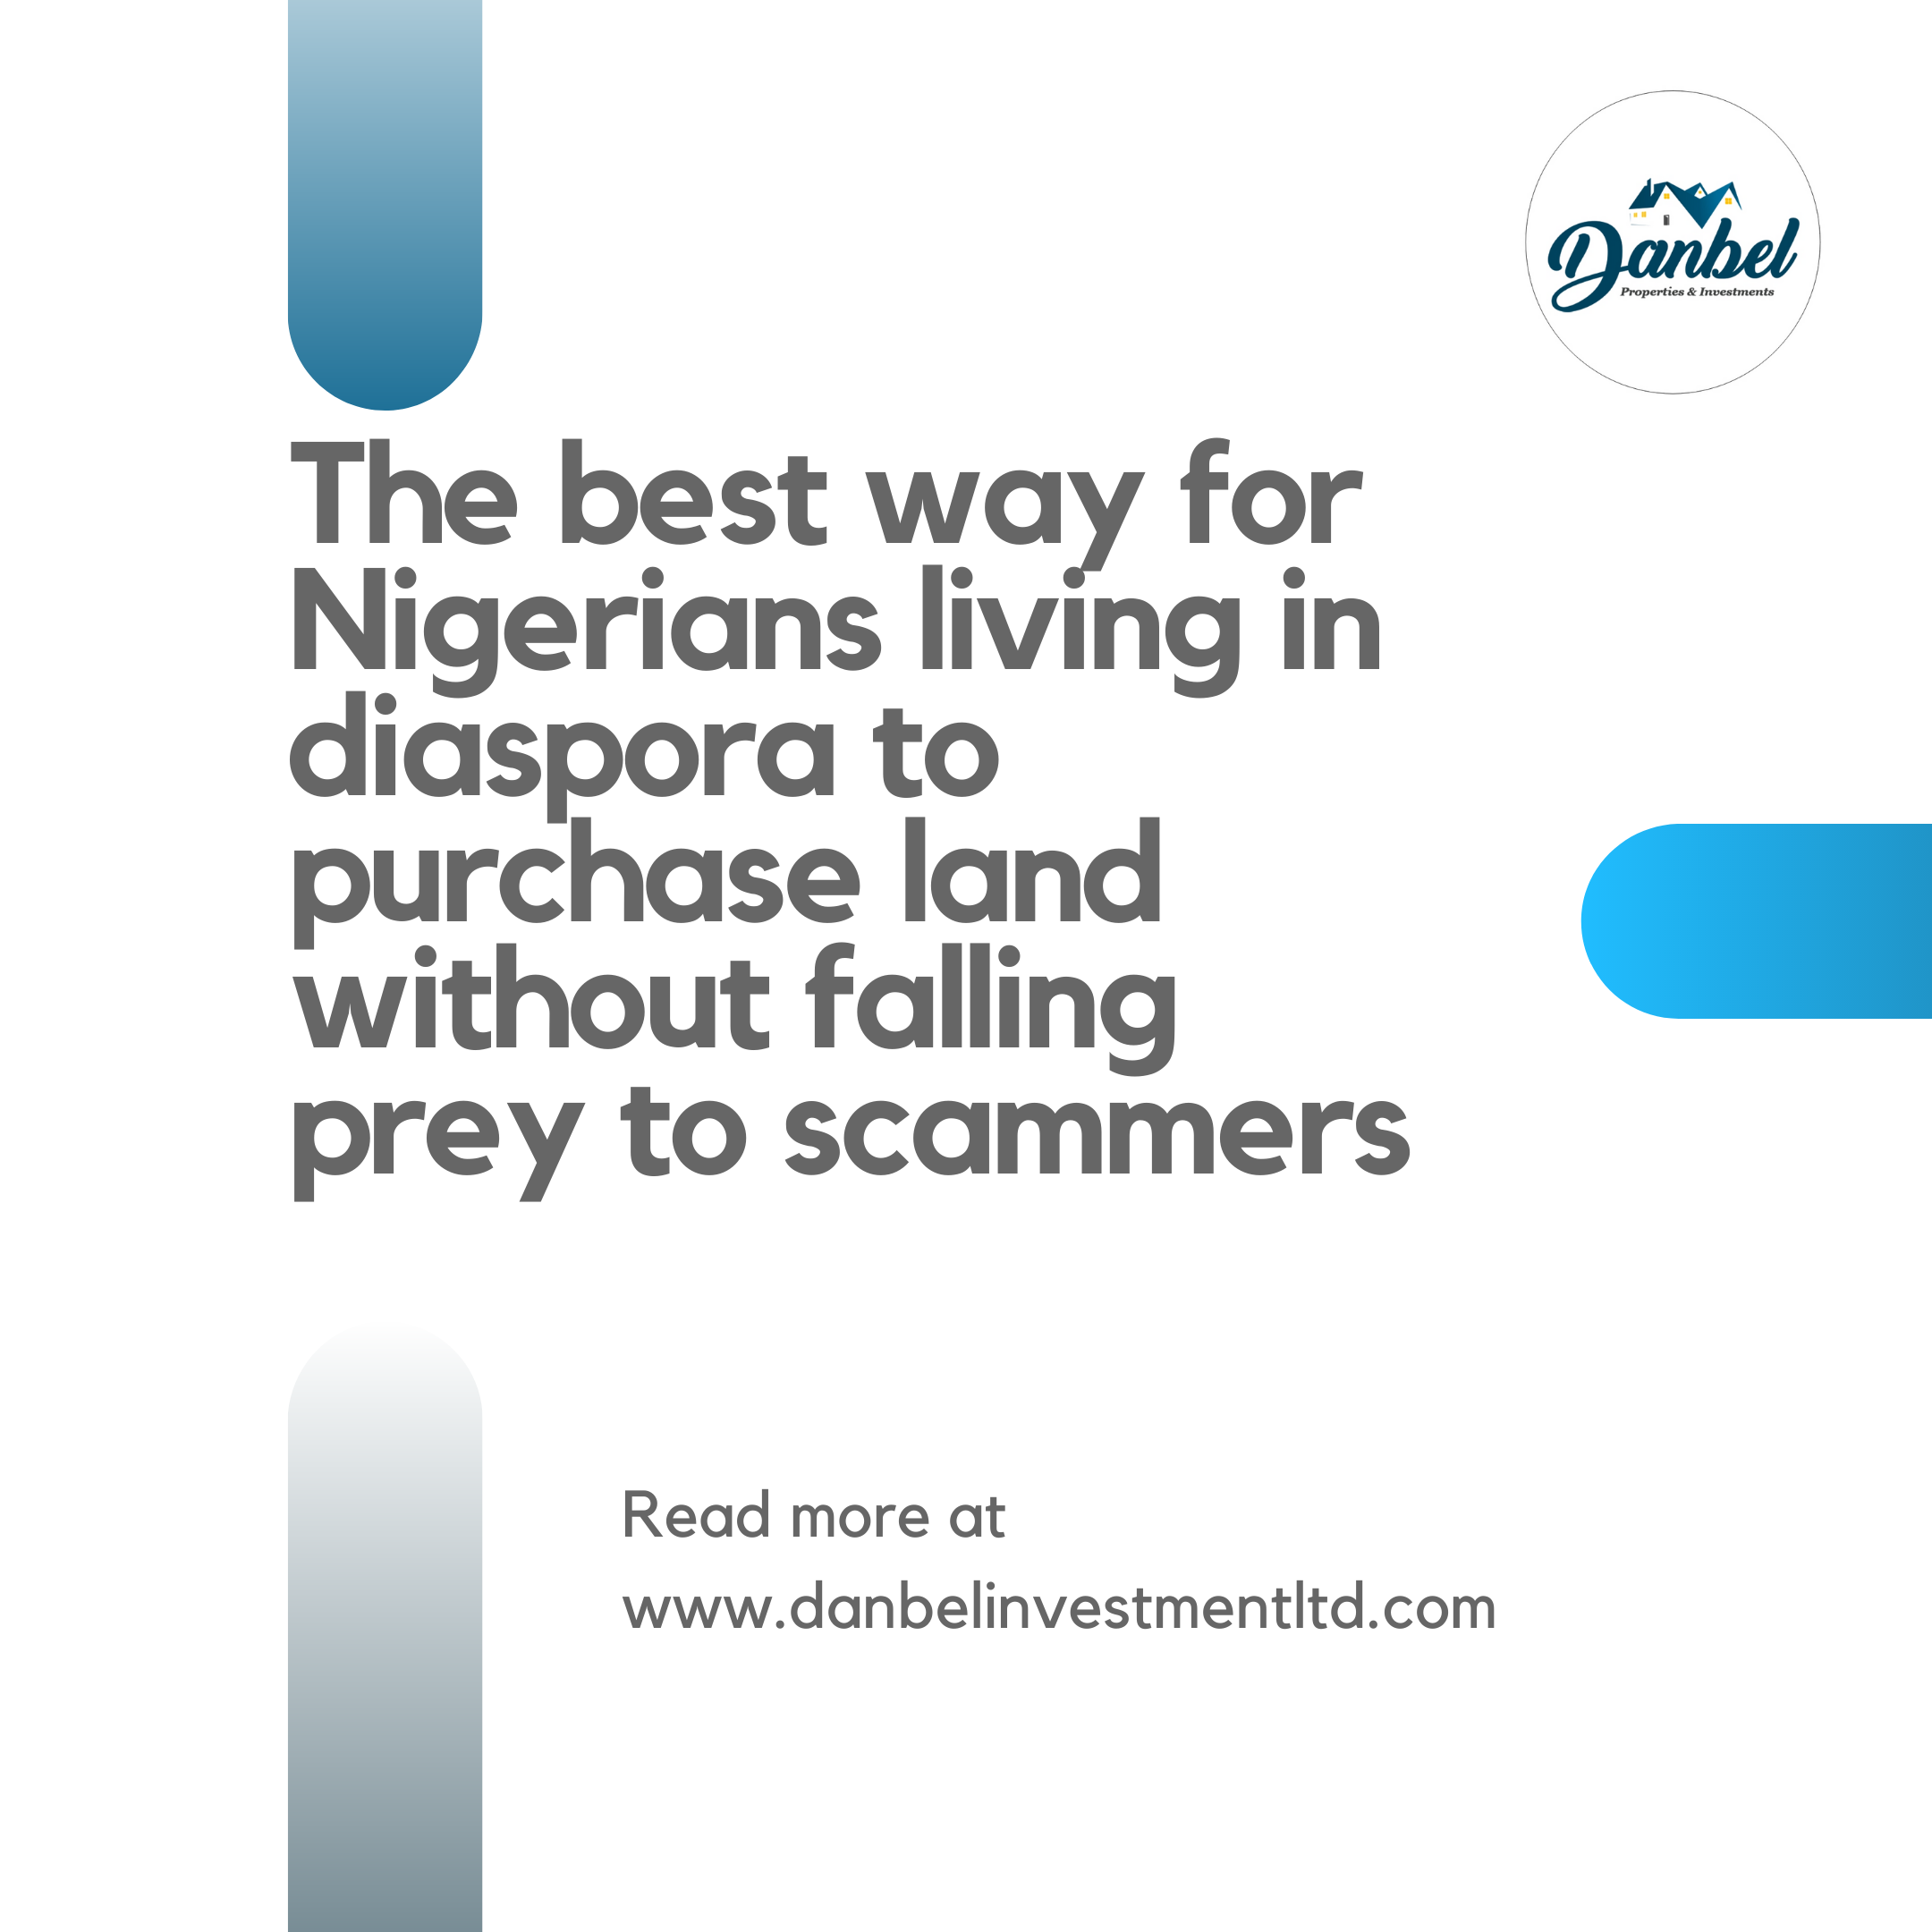 The best way for Nigerians living in diaspora to purchase land without falling prey to scammers